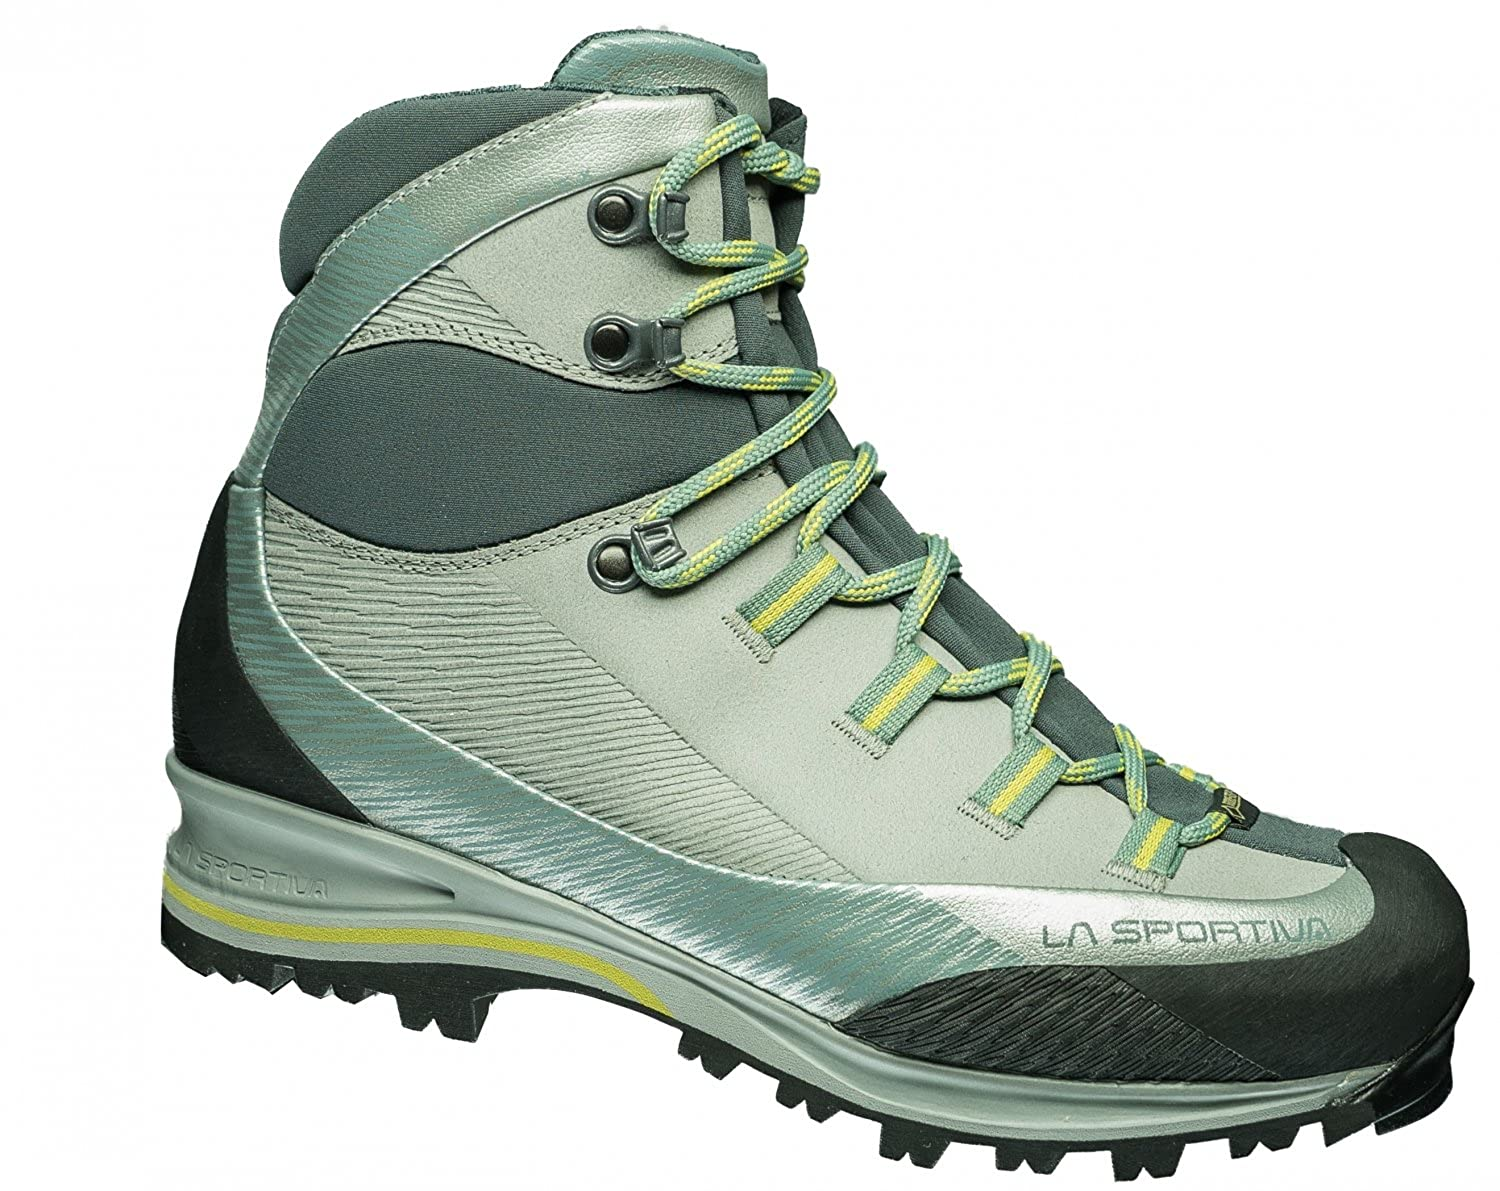 La Sportiva Trango TRK Leather Woman GTX Green Bay